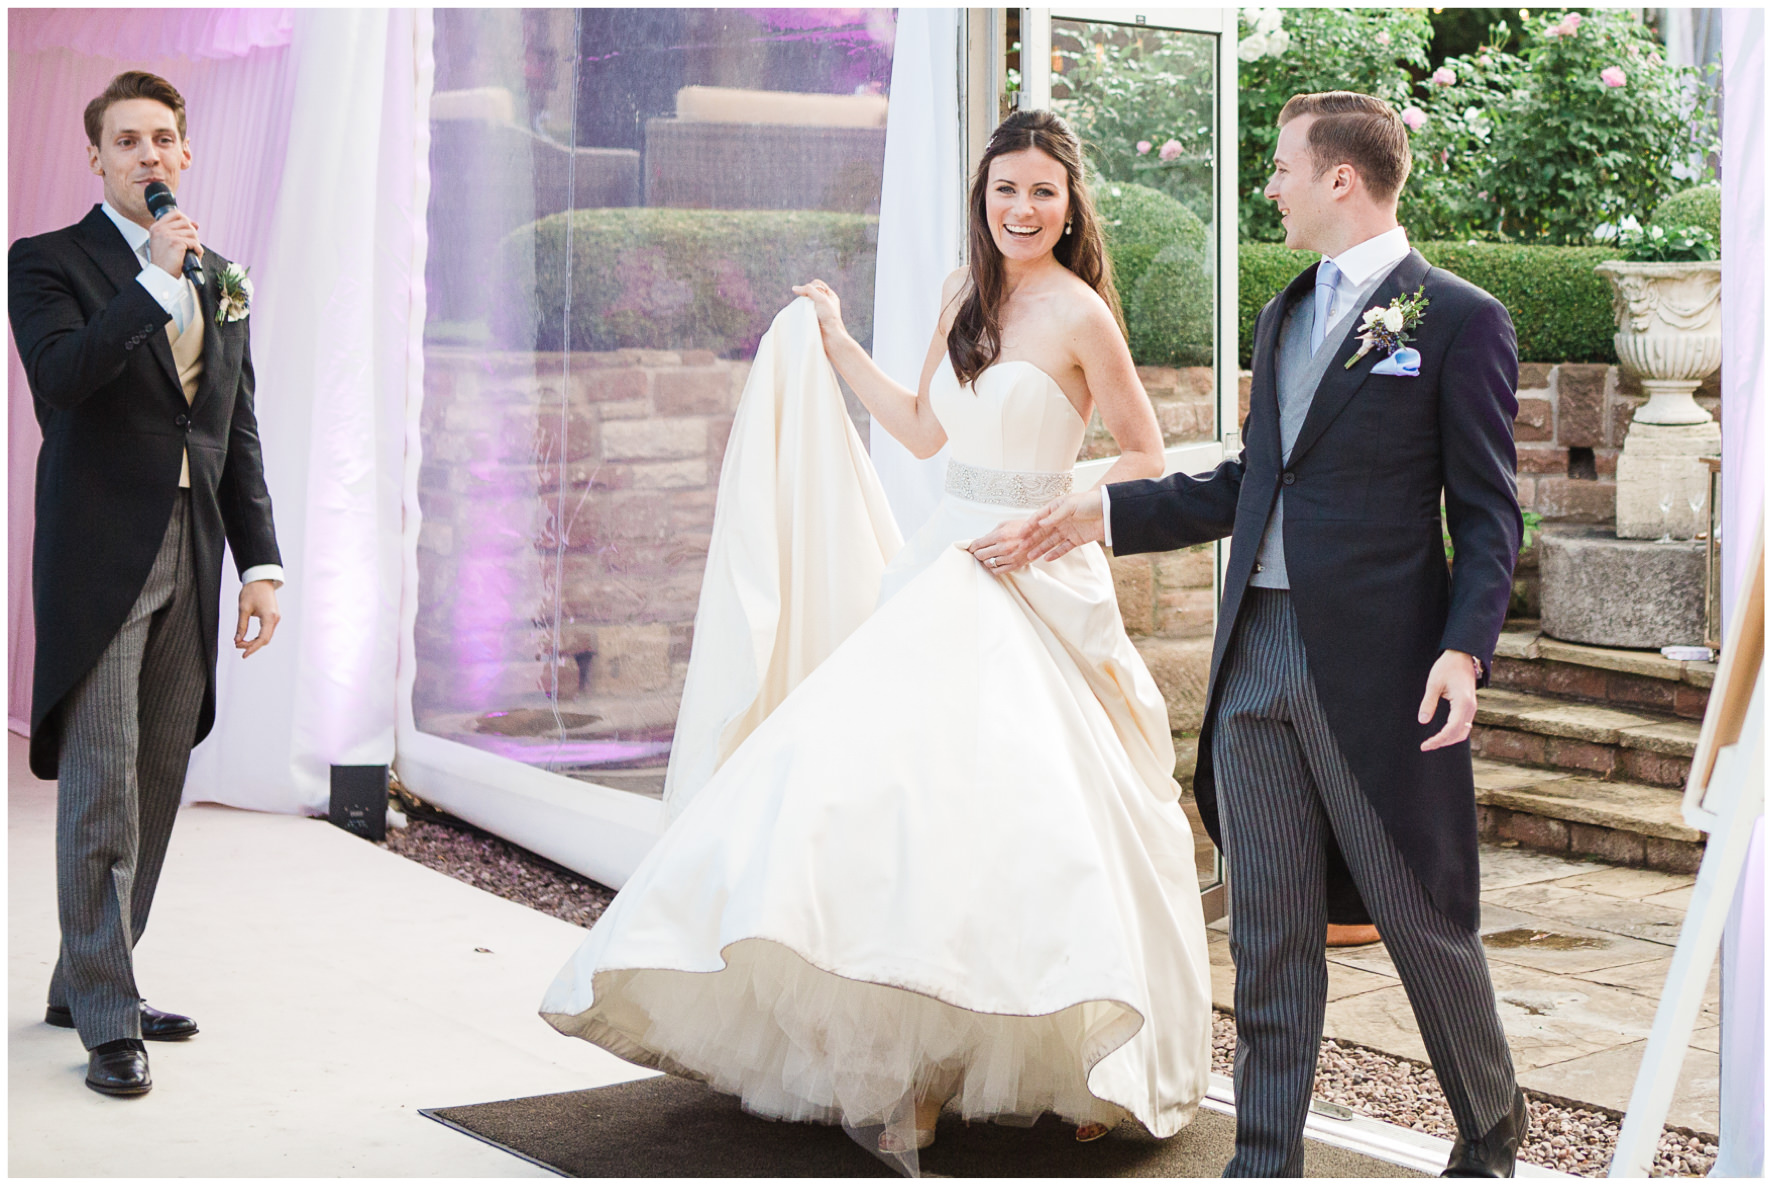 Lucy Davenport Photography, home wedding, marquee wedding, clear marquee, Caroline Castigliano, wedding dress, entrance